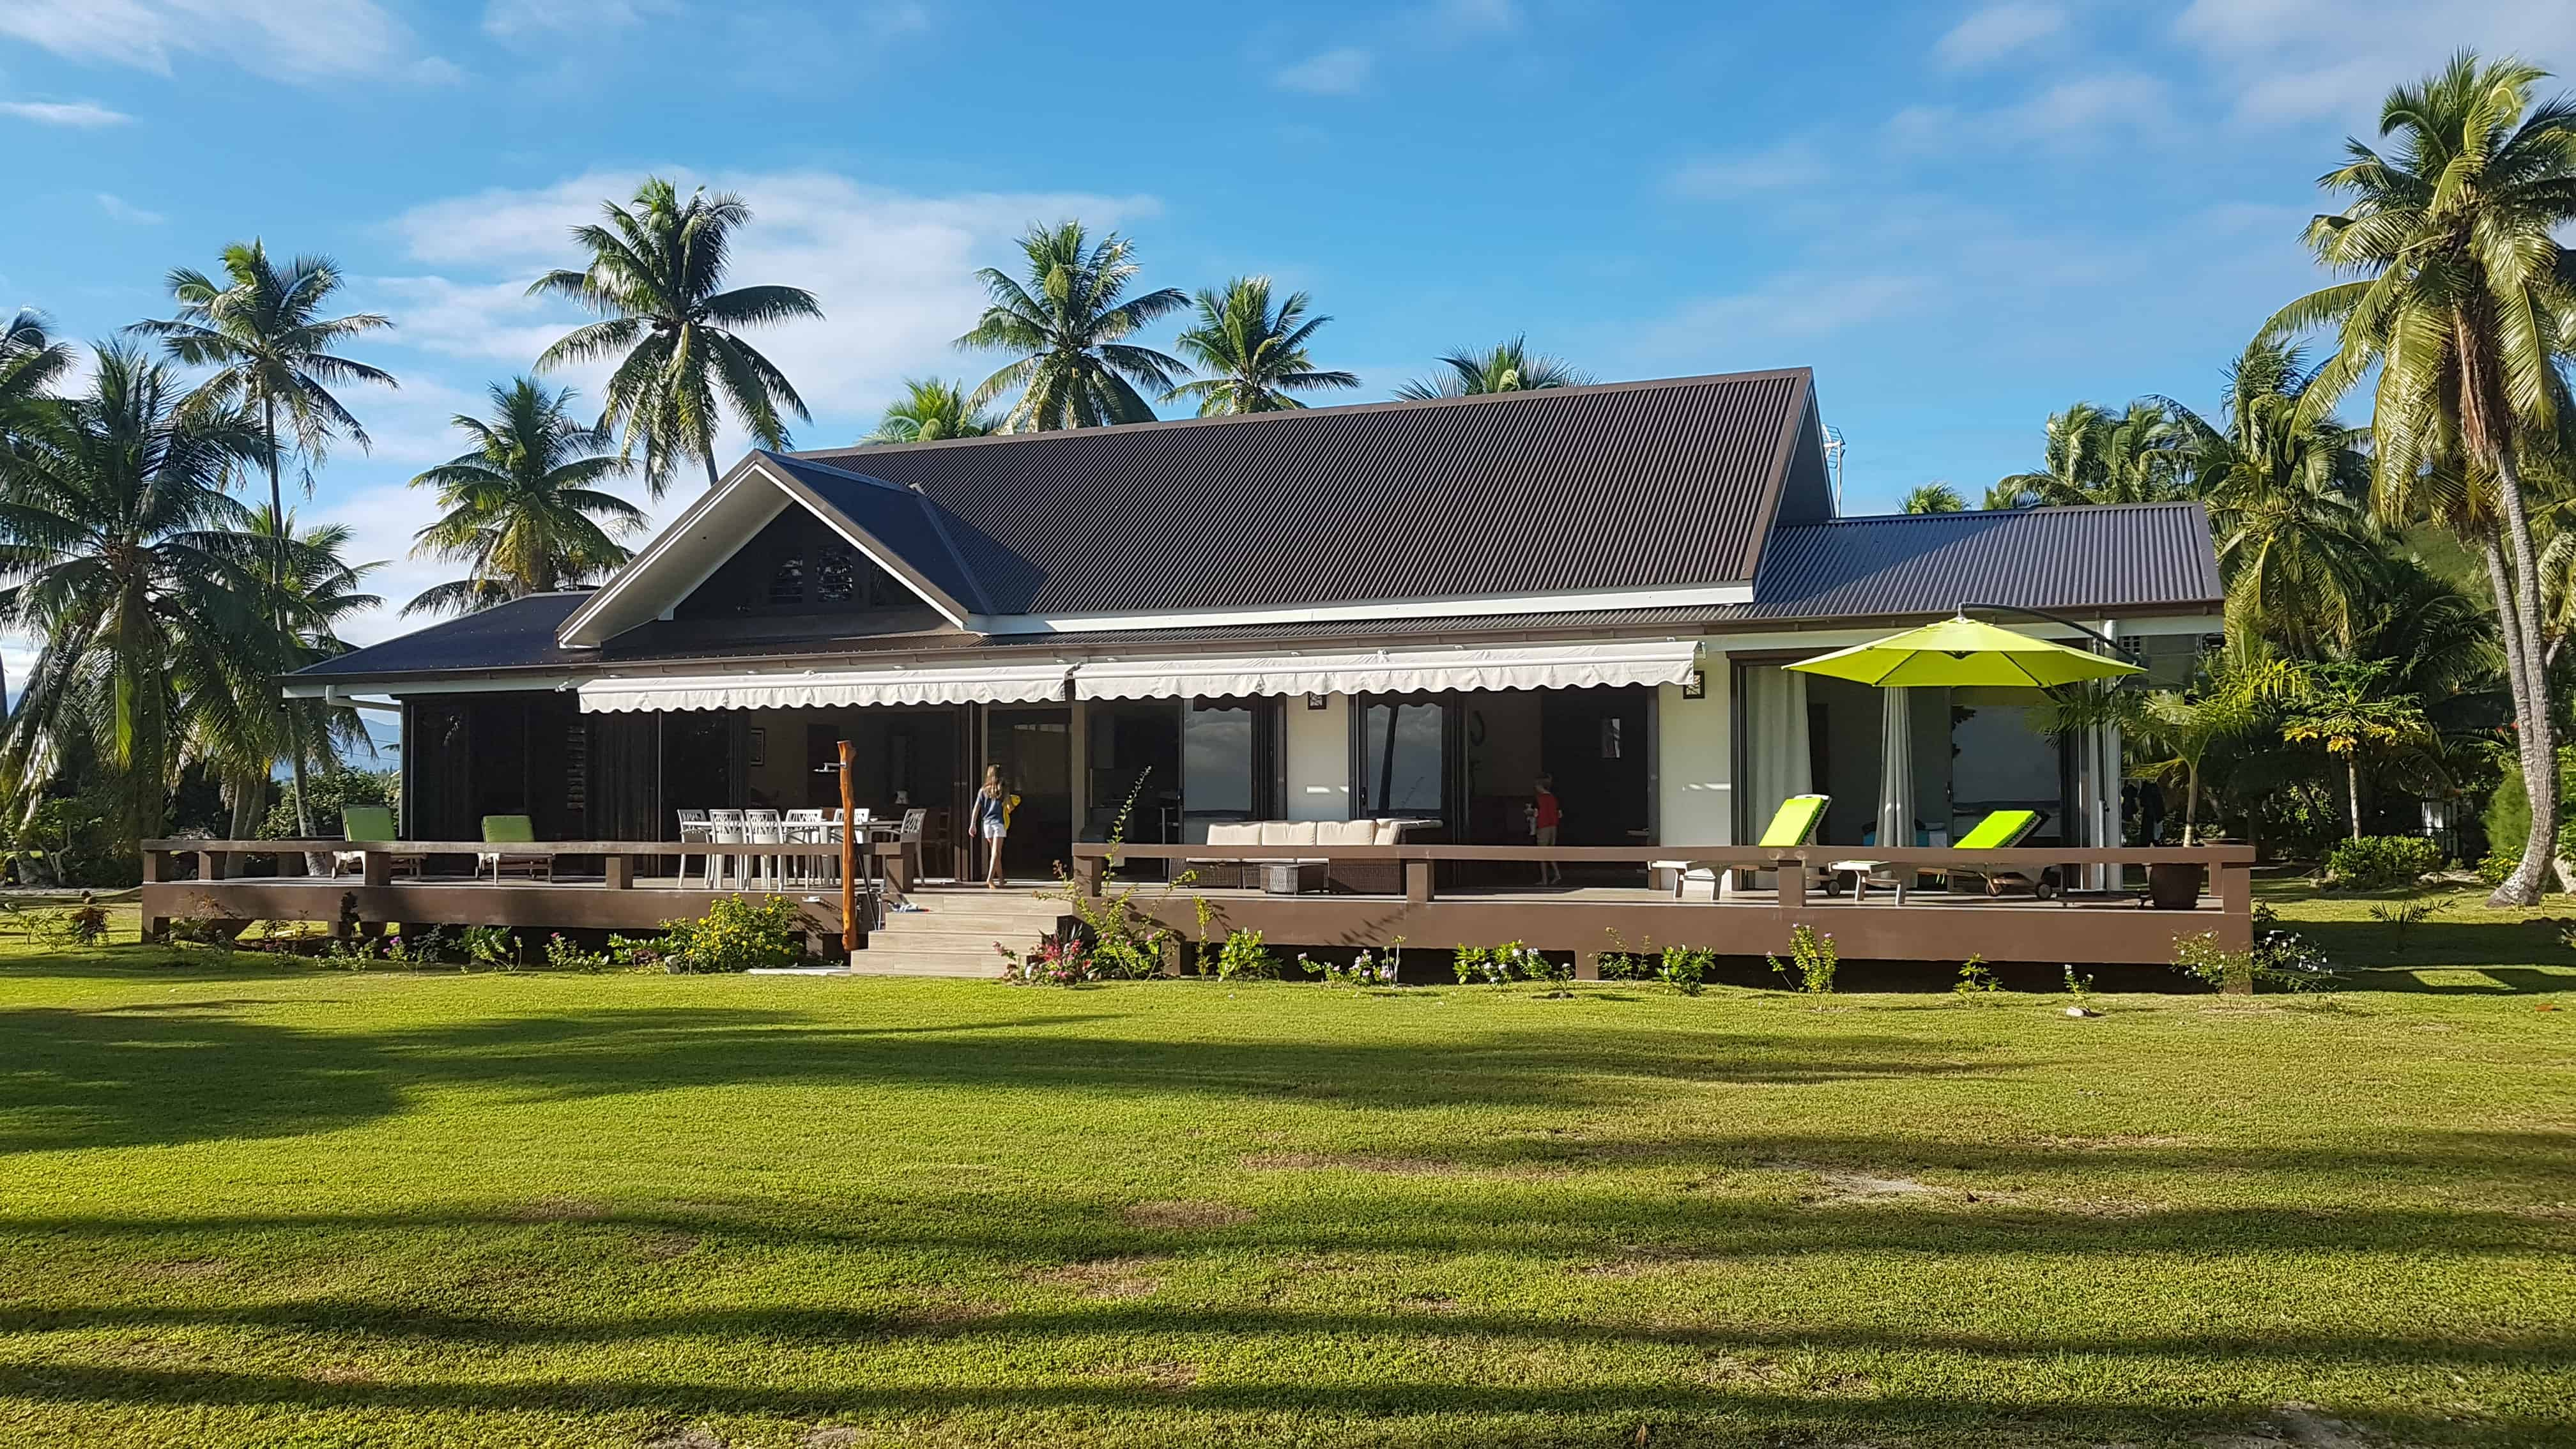 https://tahititourisme.it/wp-content/uploads/2018/09/Villa-Tiarenui-by-Tahiti-Homes-®-a-Moorea-4.jpg